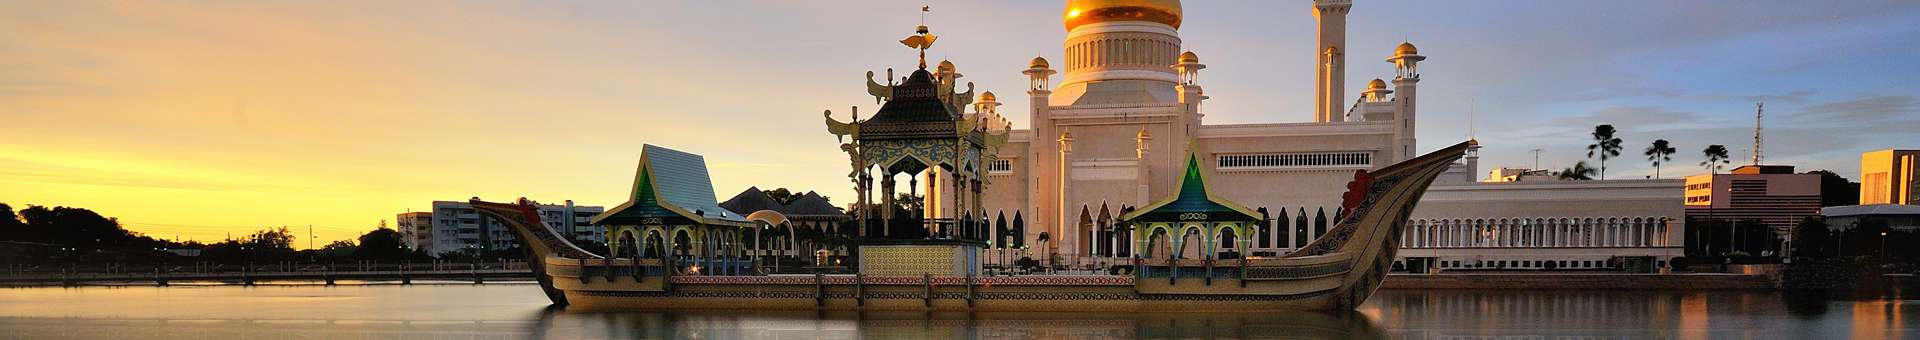 Search Whois information of domain names in Brunei